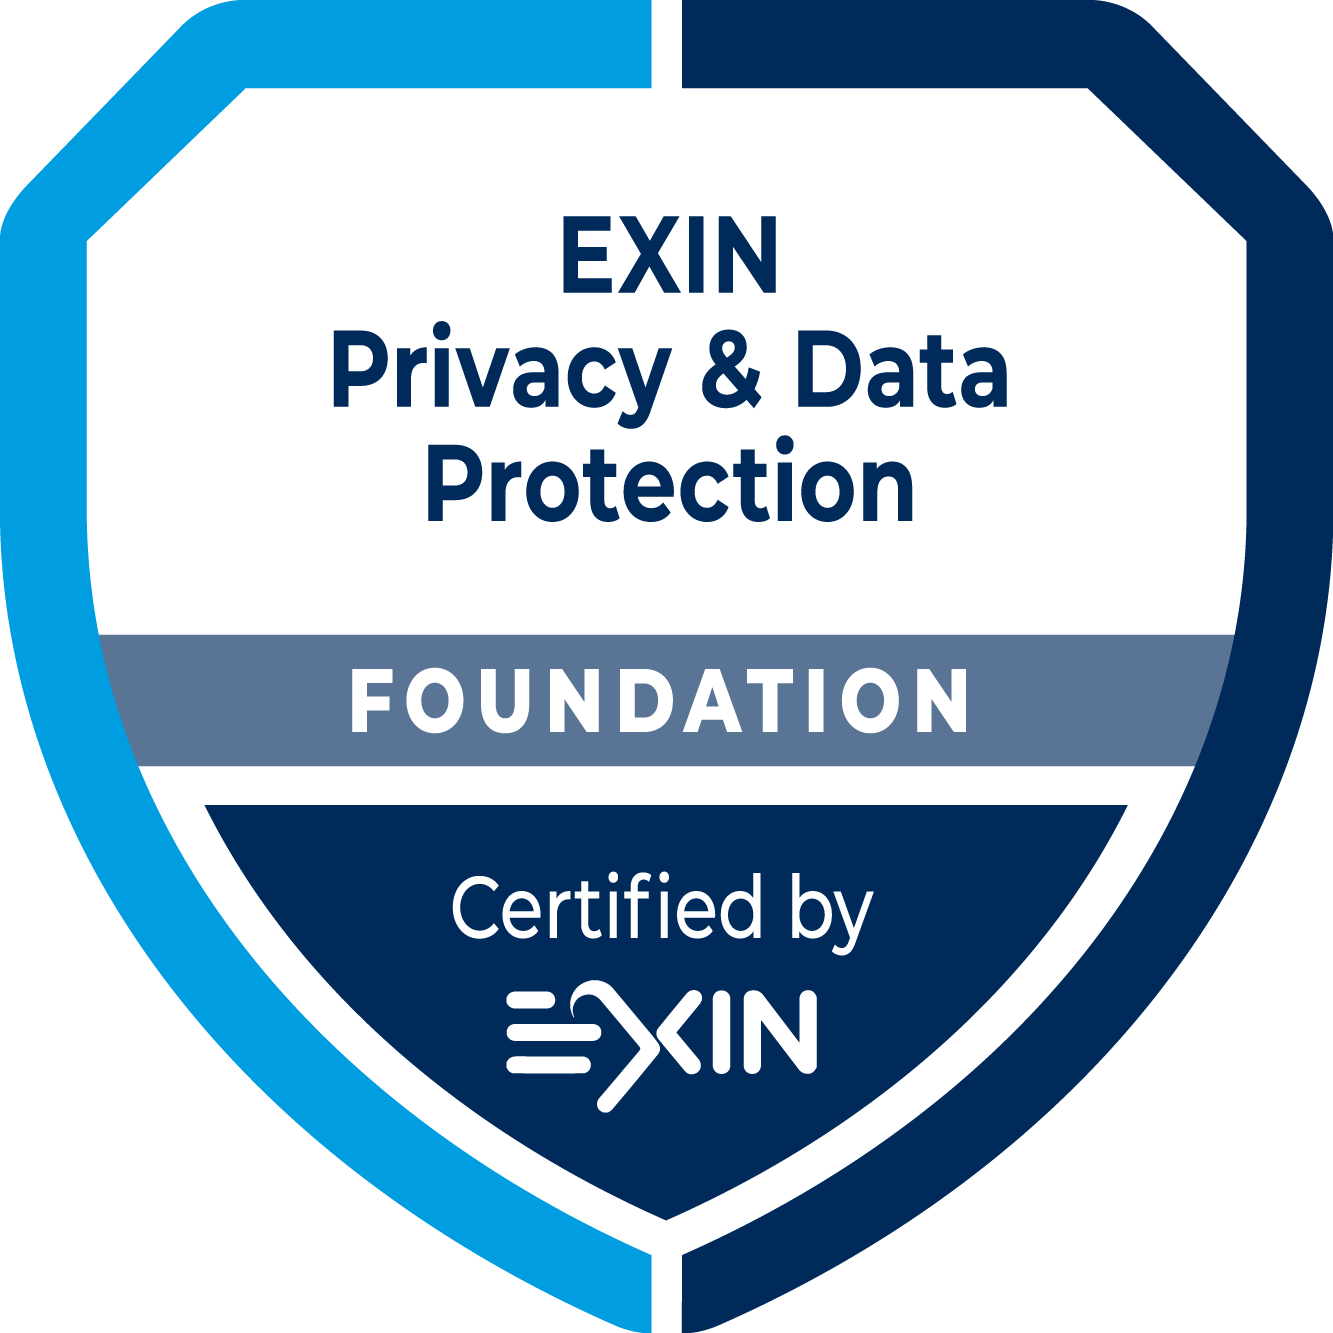 Privacy and Data Protection Foundation